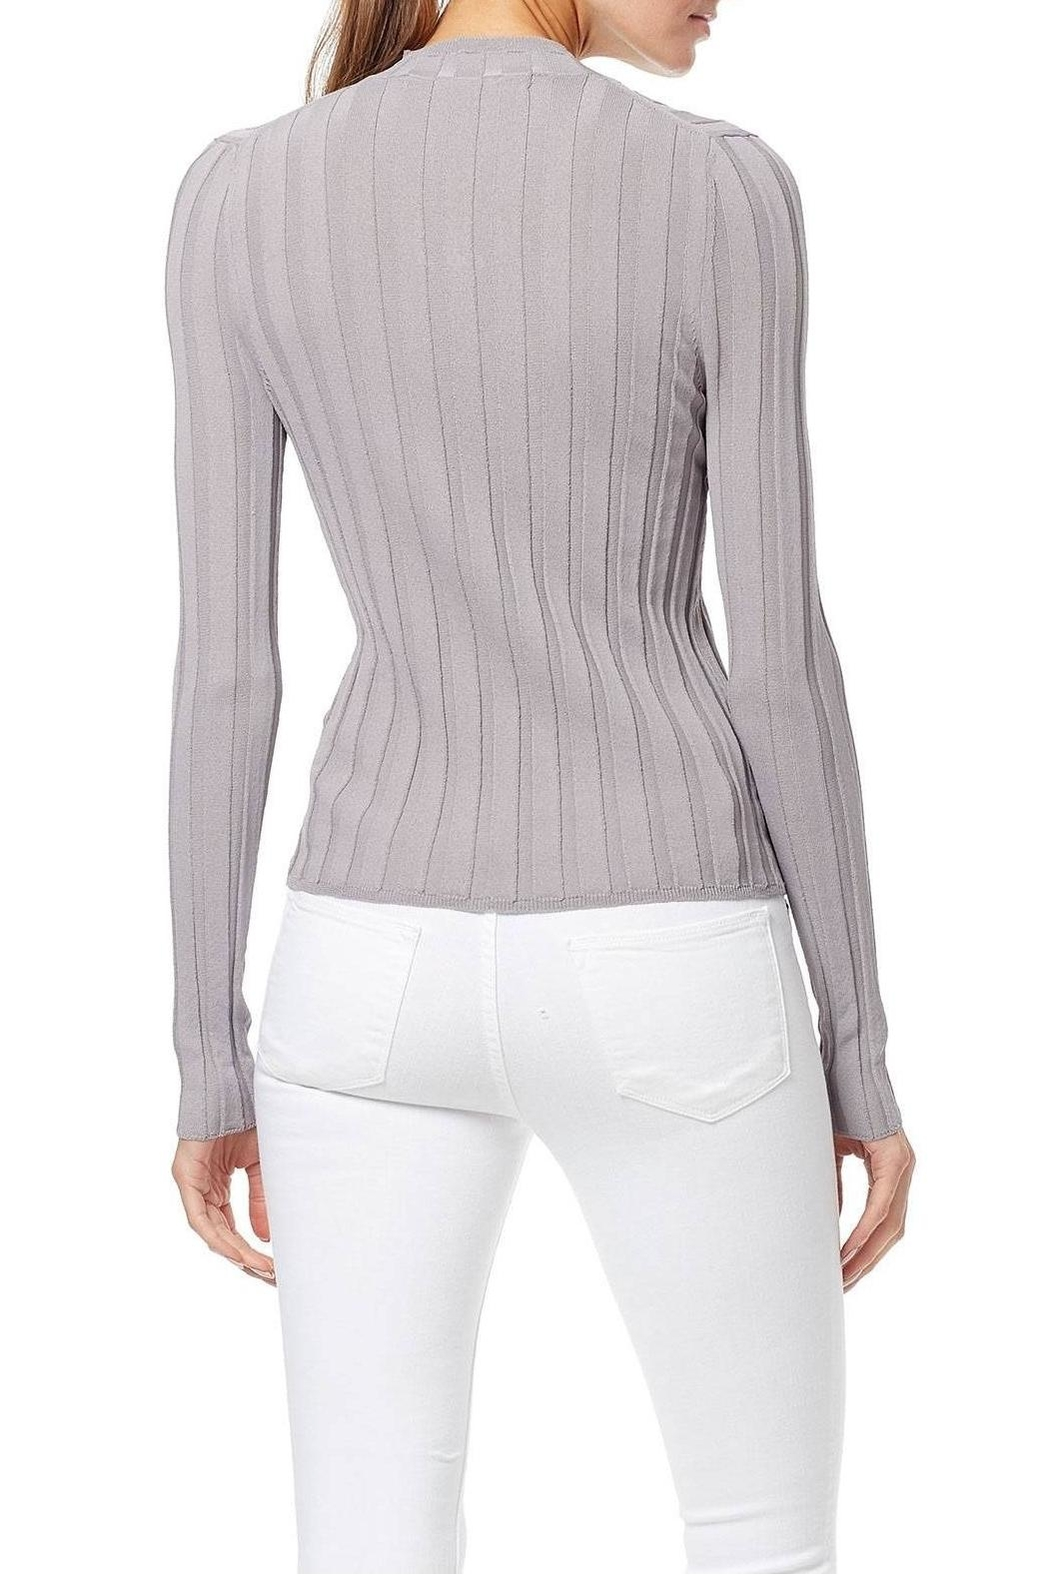 360 Cashmere Amalie Ribbed Top - Side Cropped Image